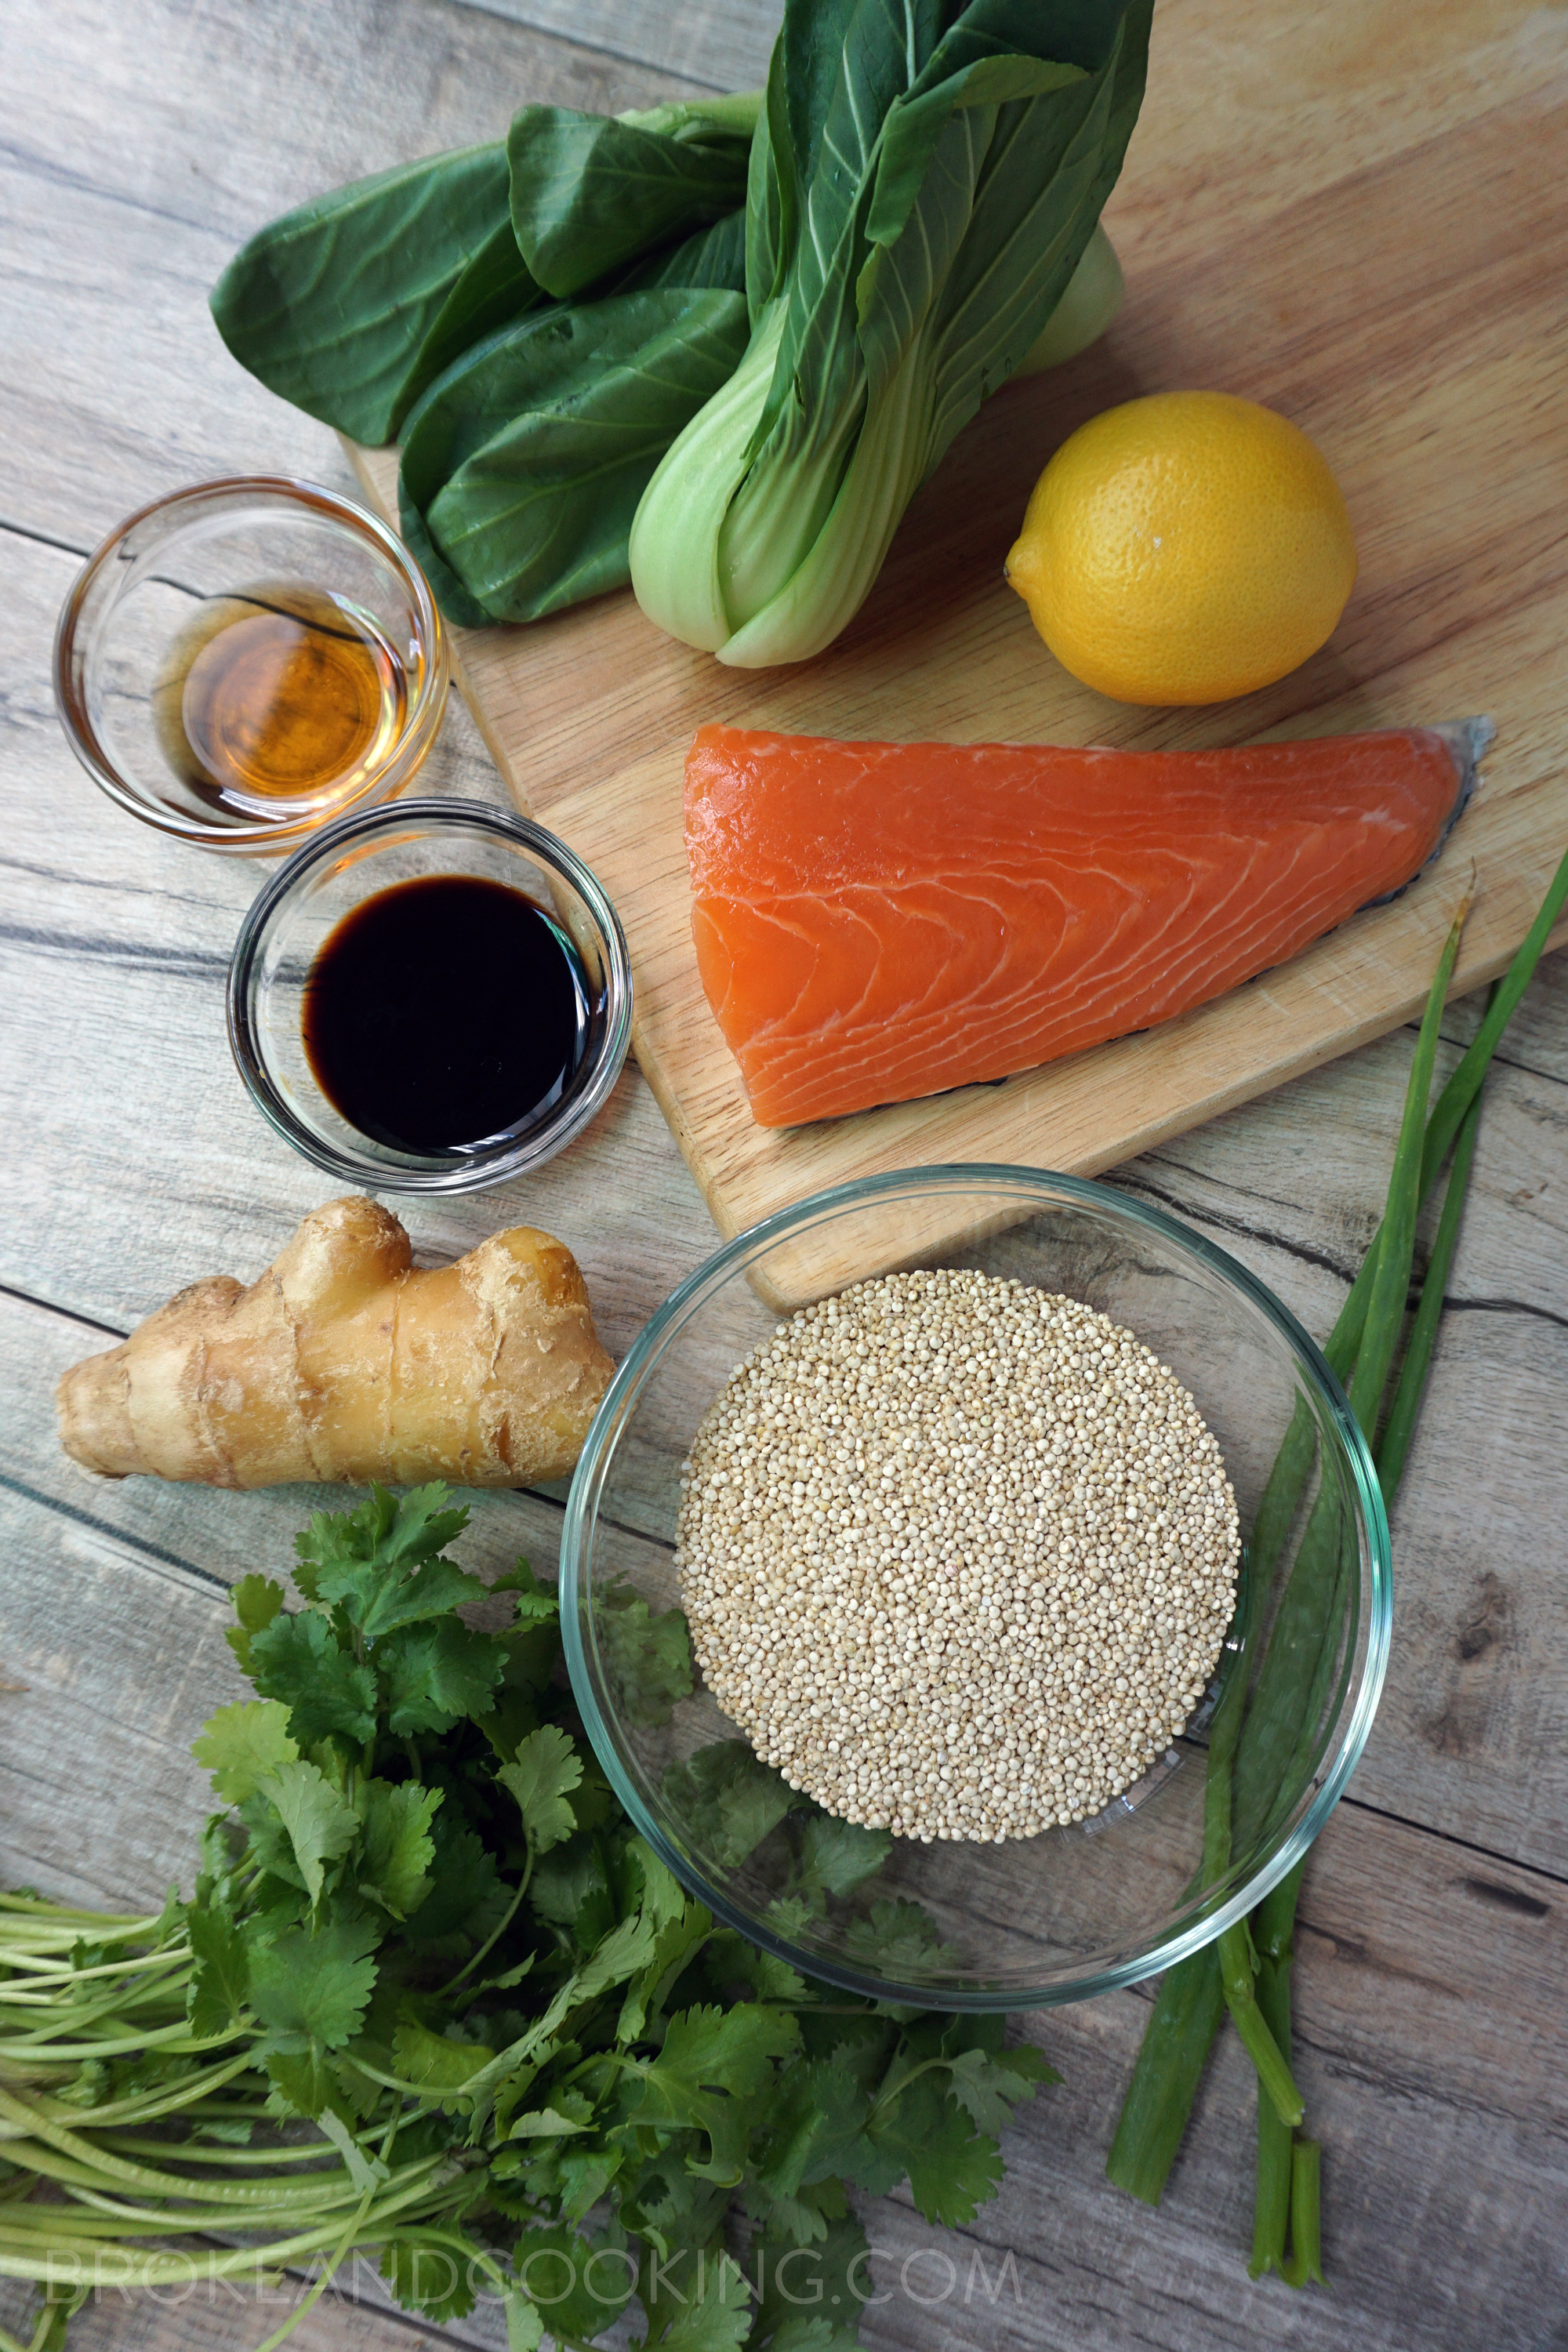 Simple, delicious ingredients for a protein-packed meal